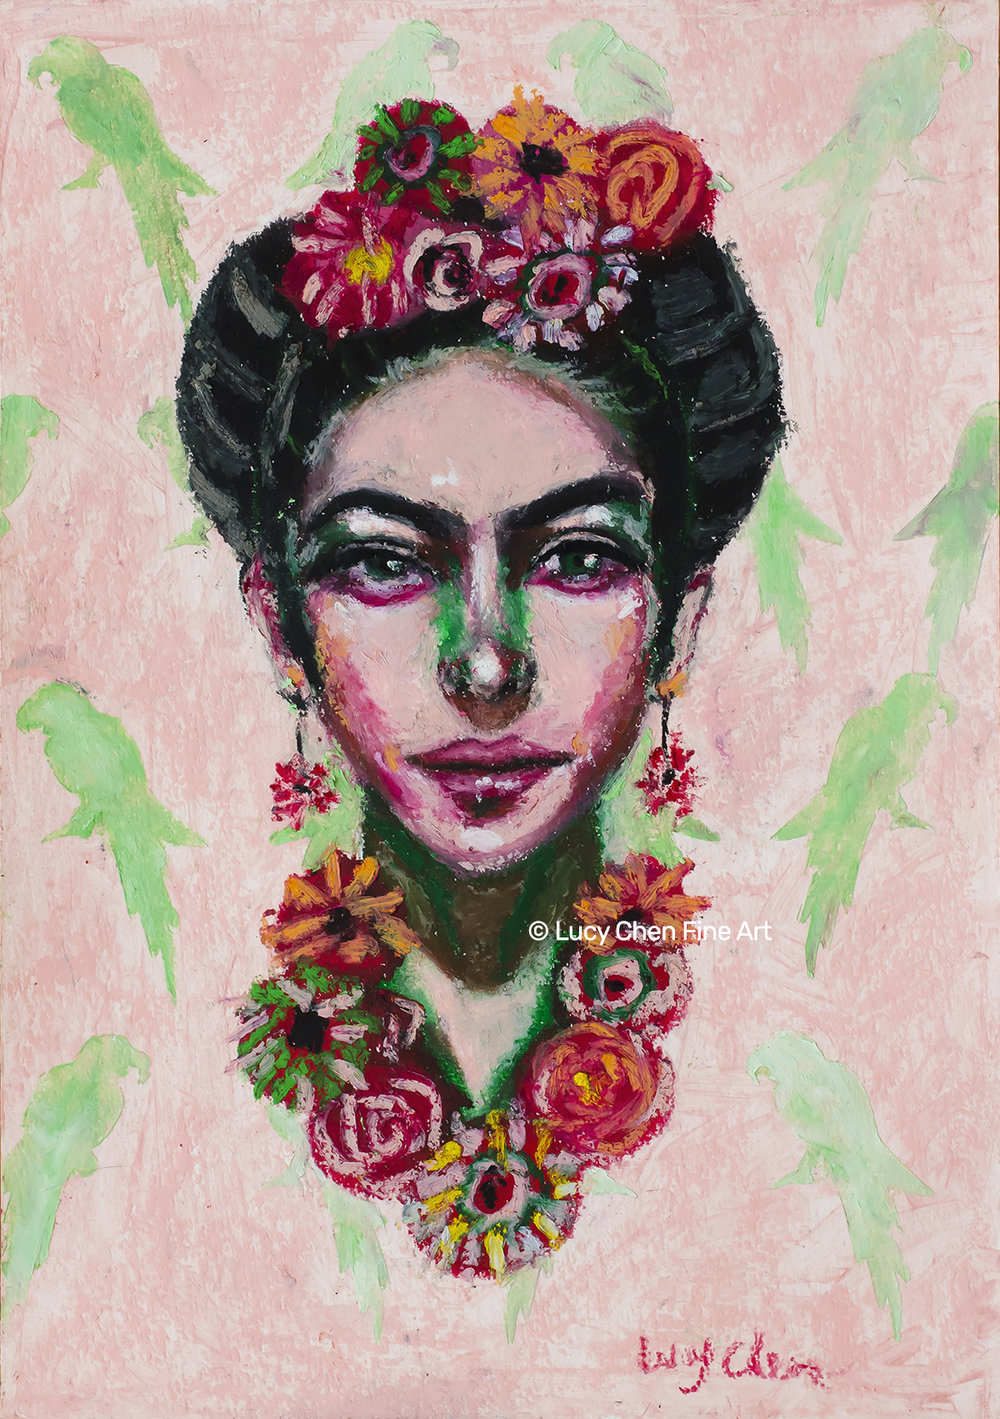 FRIDA, by Lucy Chen, oil pastel on paper. SOLD.